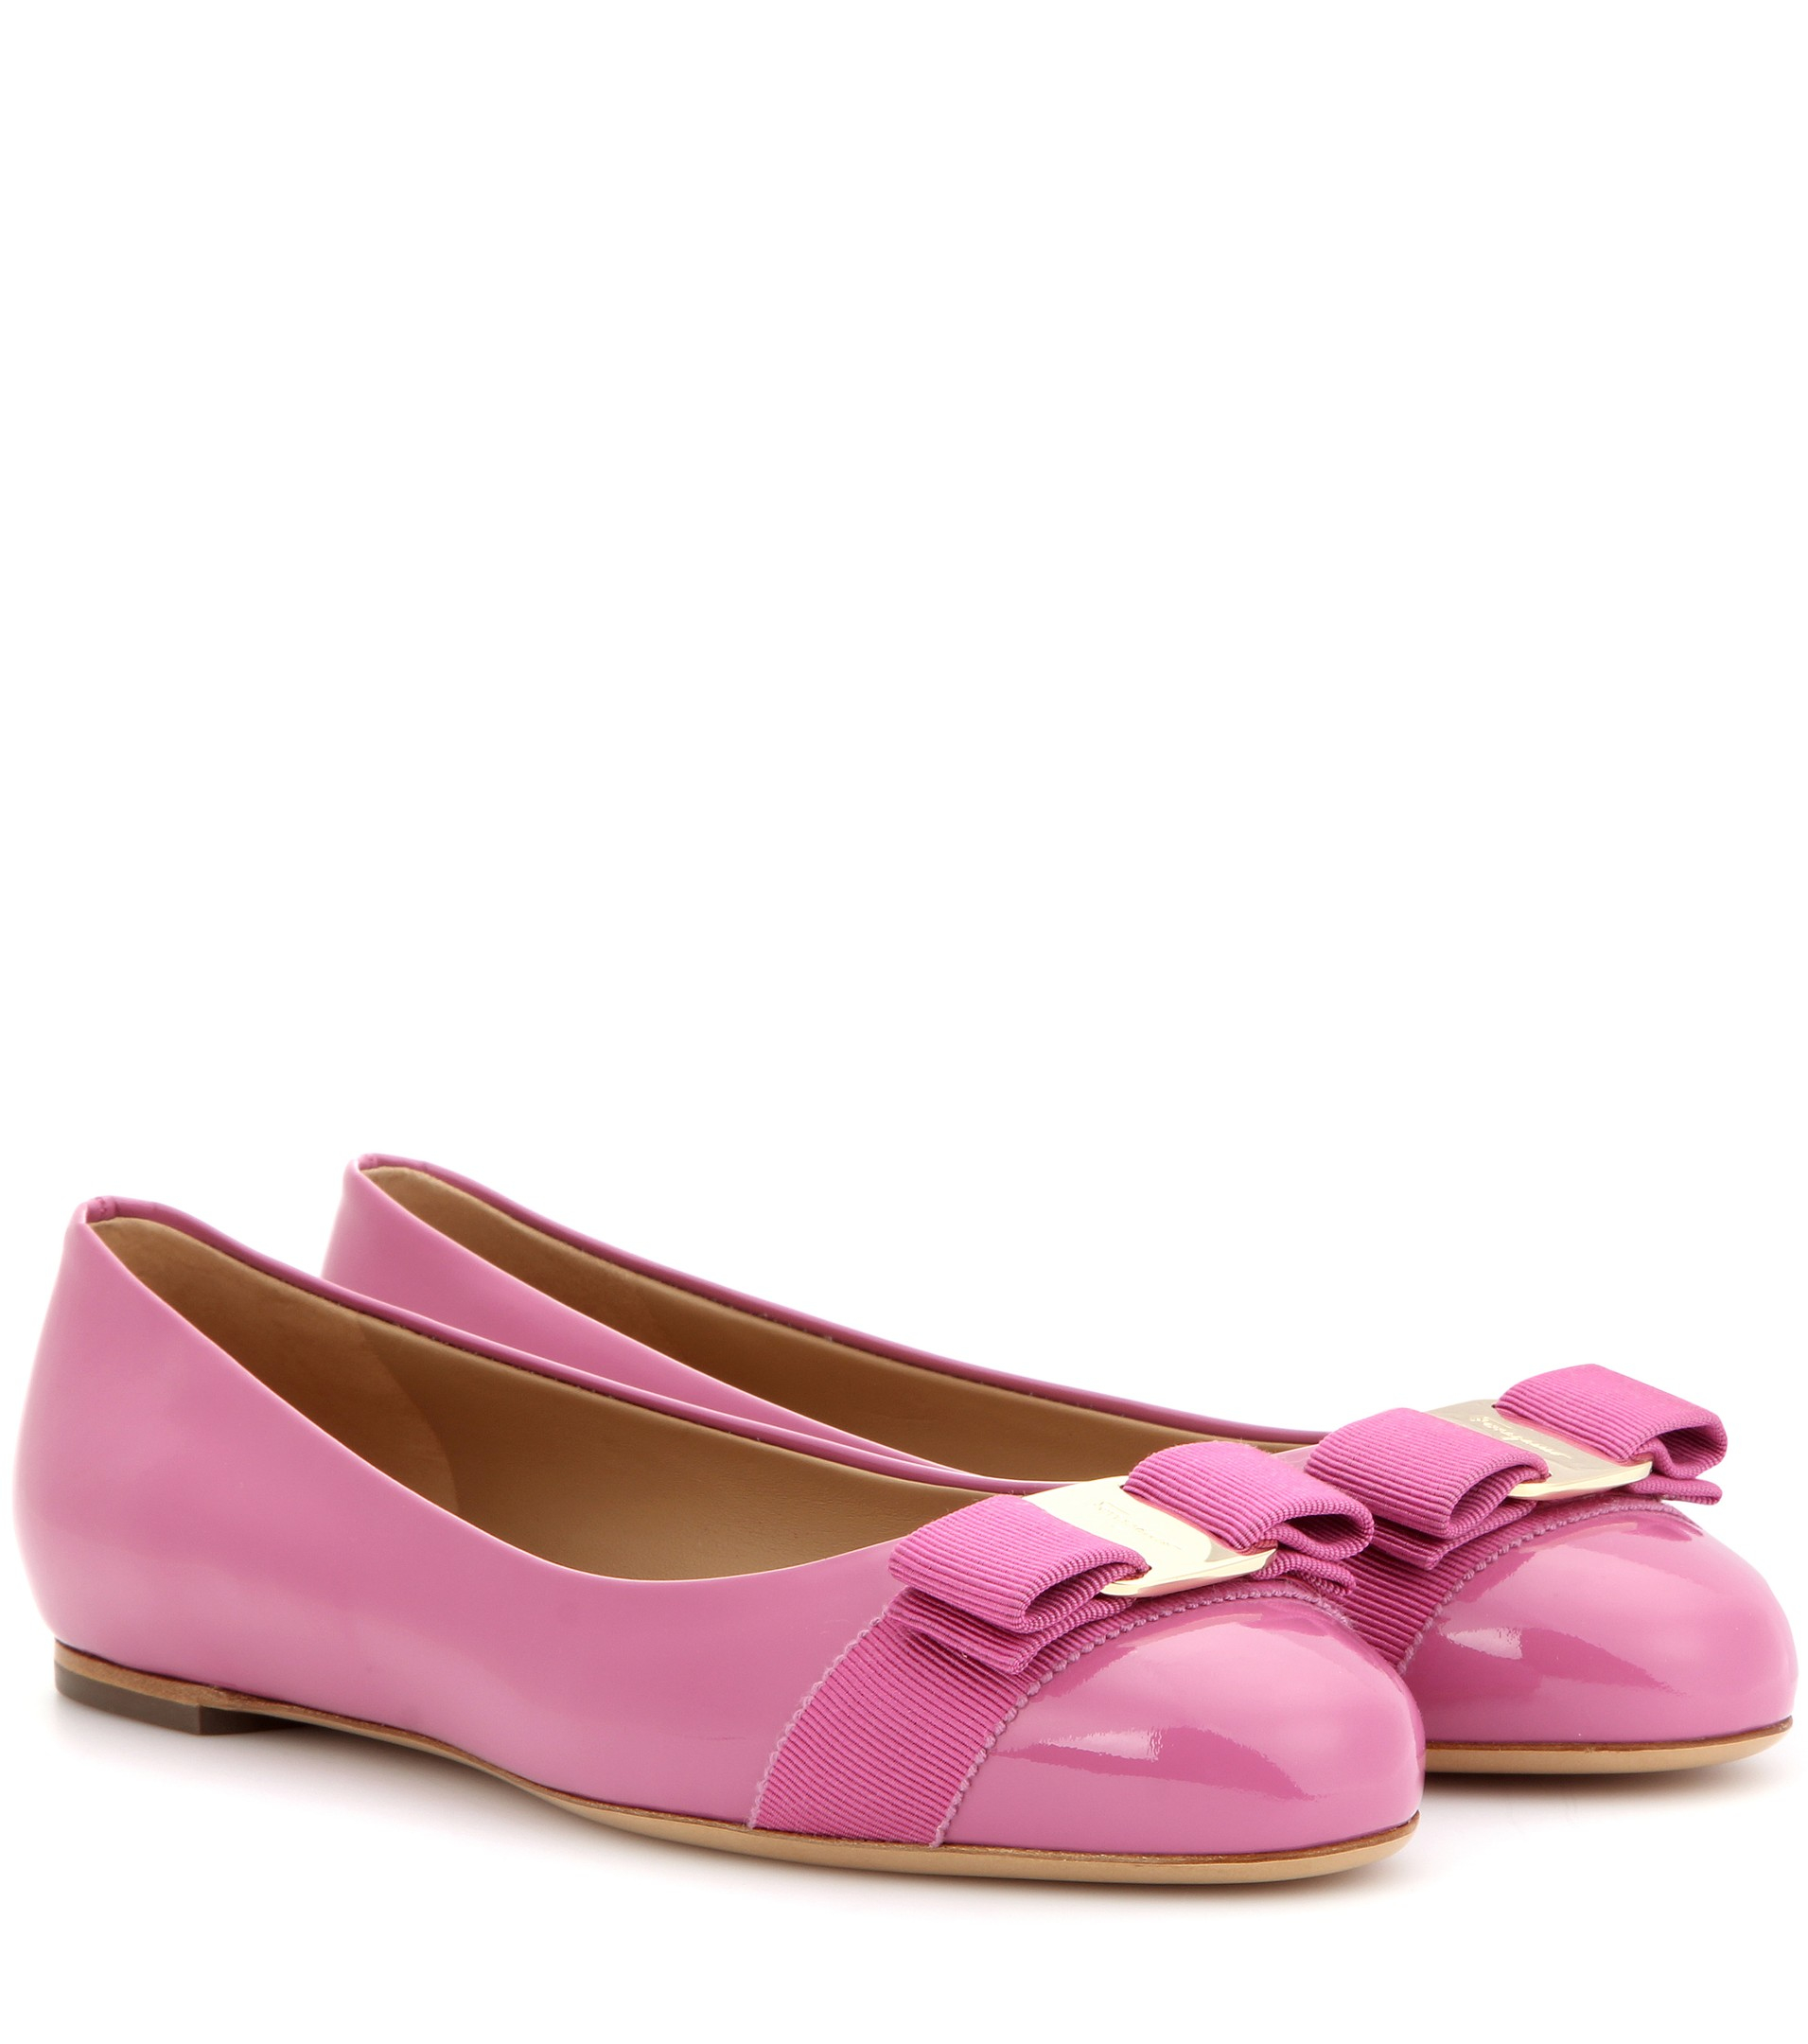 Pink Patent Leather Oxford Shoes